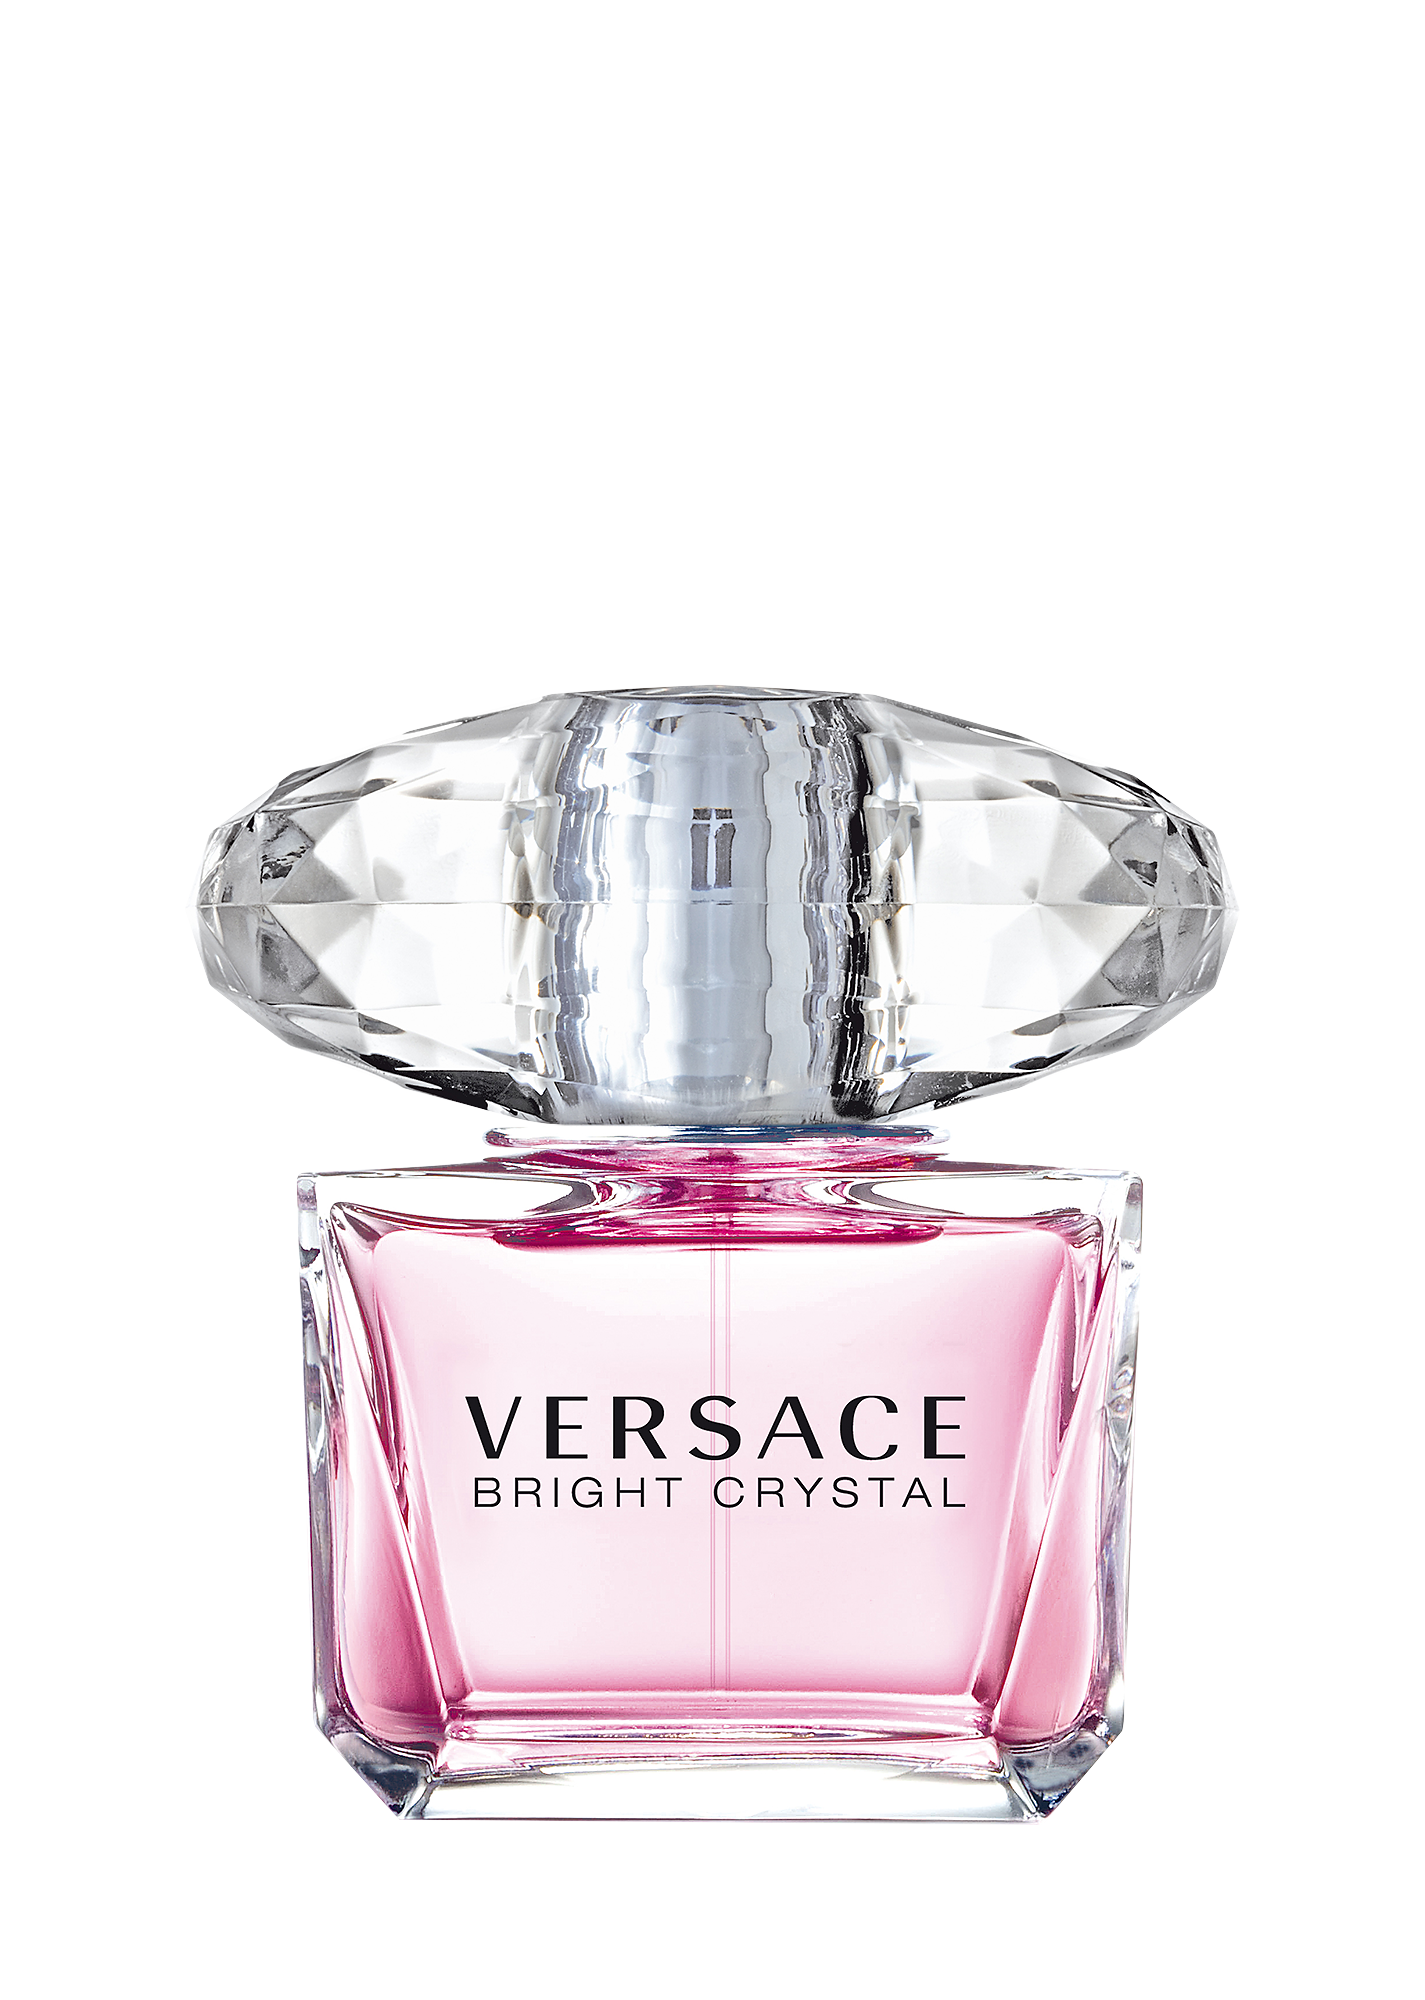 180cb3b0c7f Yükle (1425x2000)Versace Bright Crystal 90 ml for Women US Online StoreOne  of Versace's most beloved jewel-fragrances in the world.